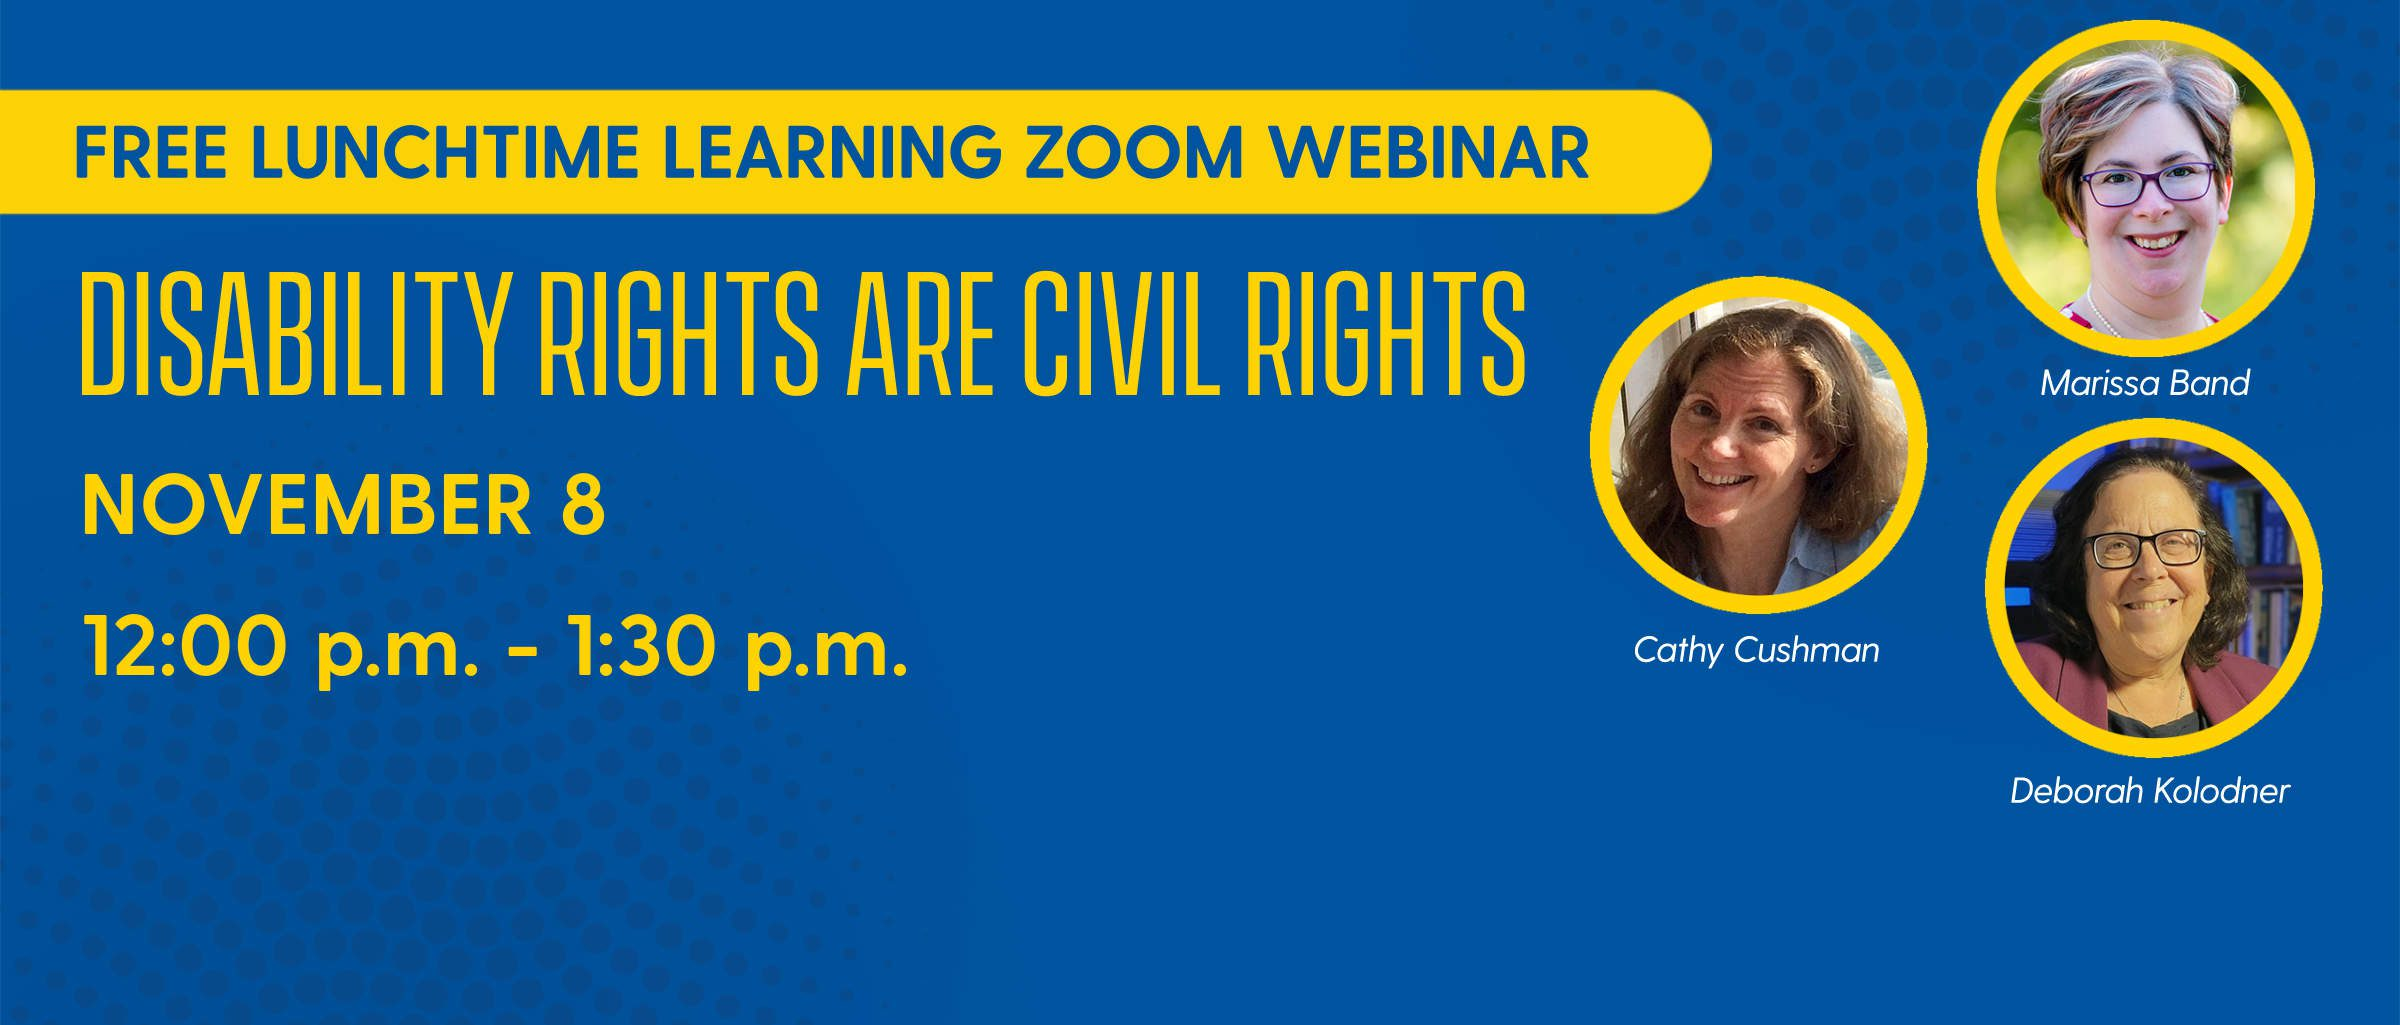 Disability Rights Are Civil Rights Lunchtime Learning November 8 Noon to 1:30 pm